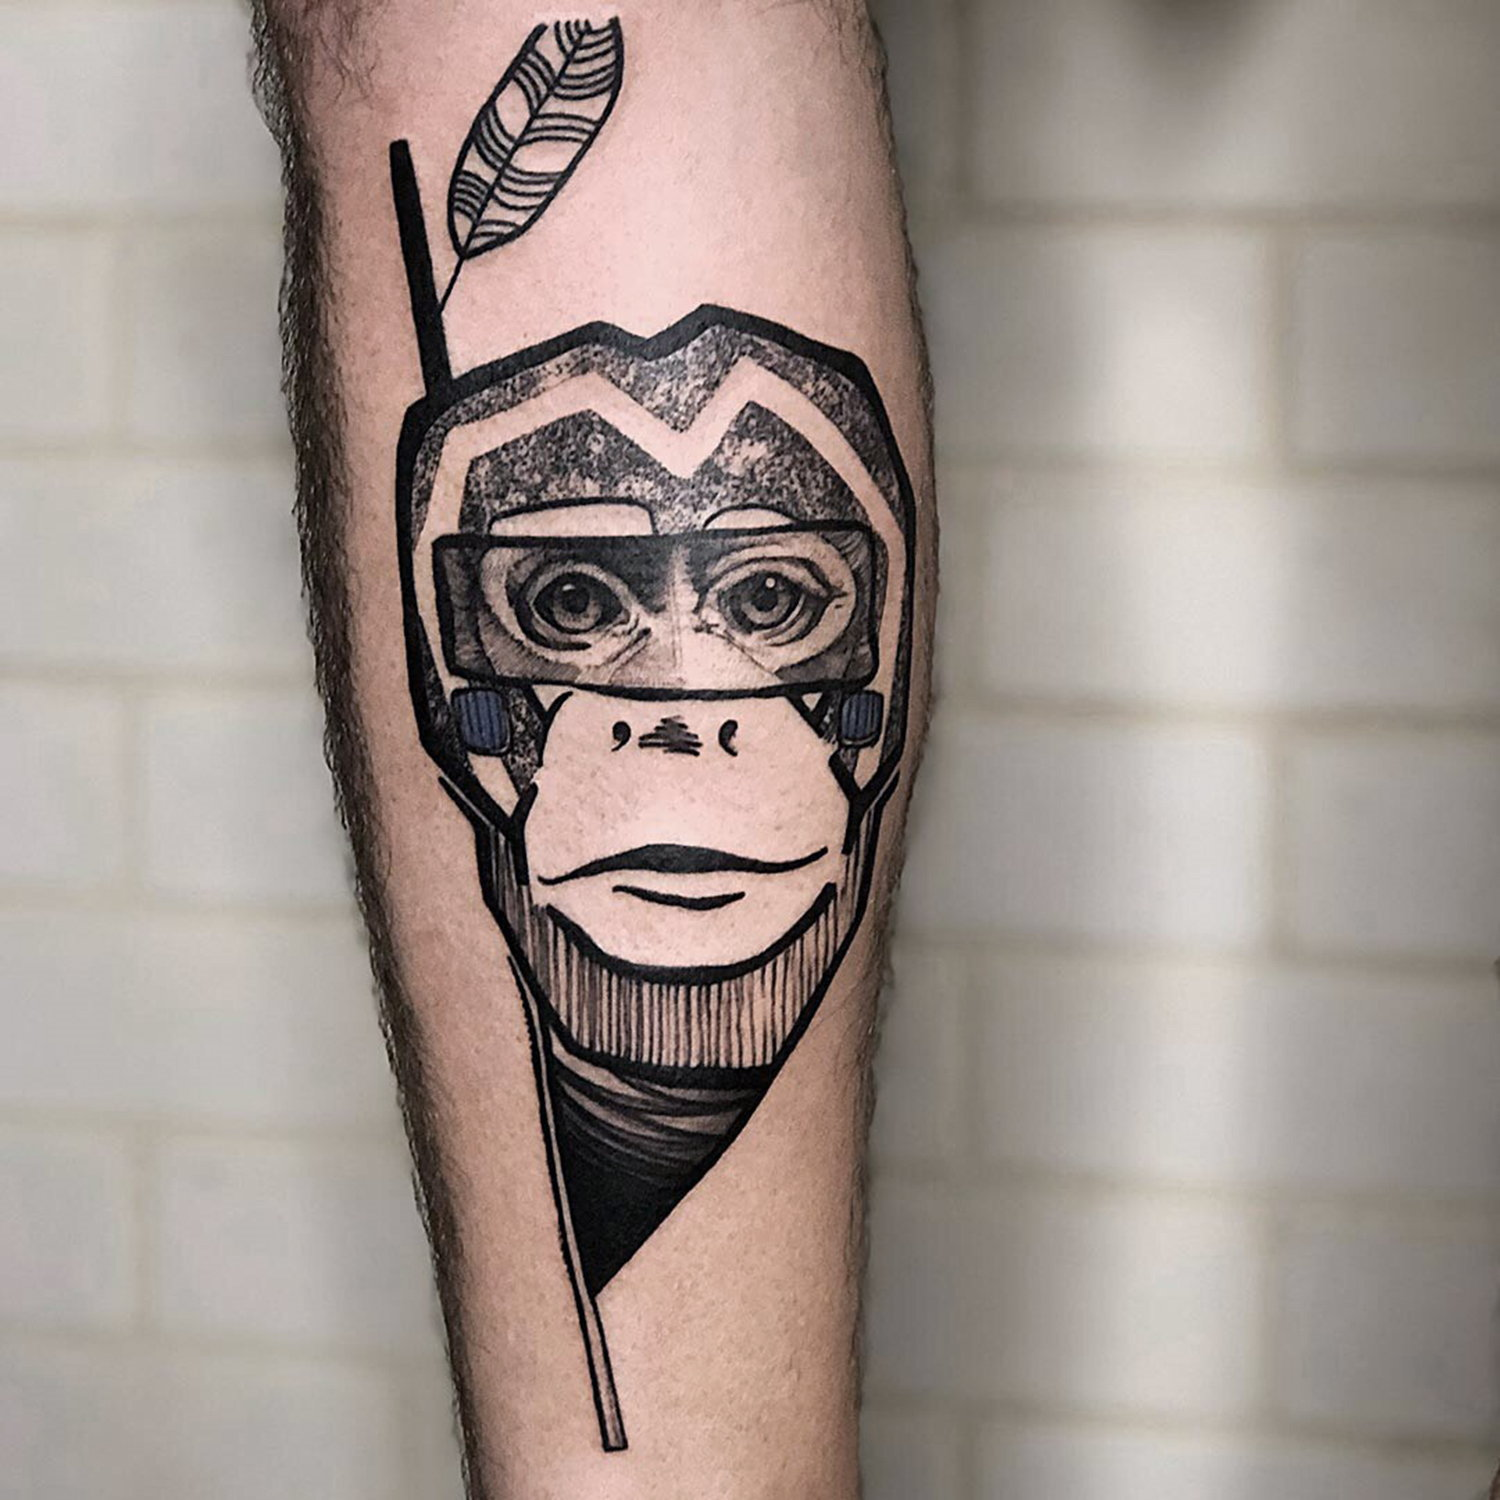 monkey tattoo on leg by shiran, tel aviv